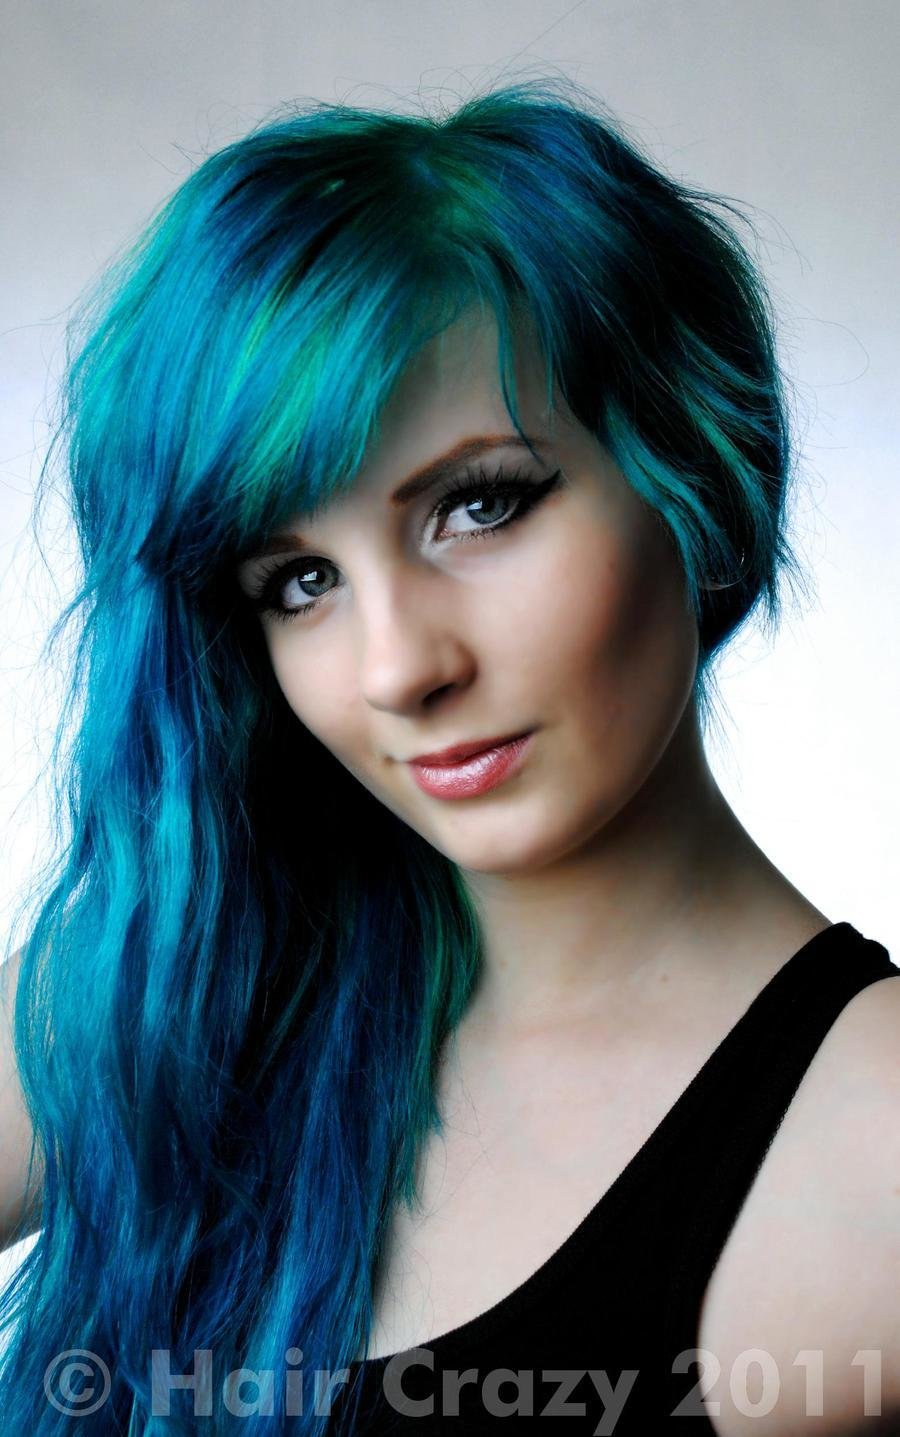 New Girls Long Styles Hair Photos Haircrazy Com Ideas With Pictures